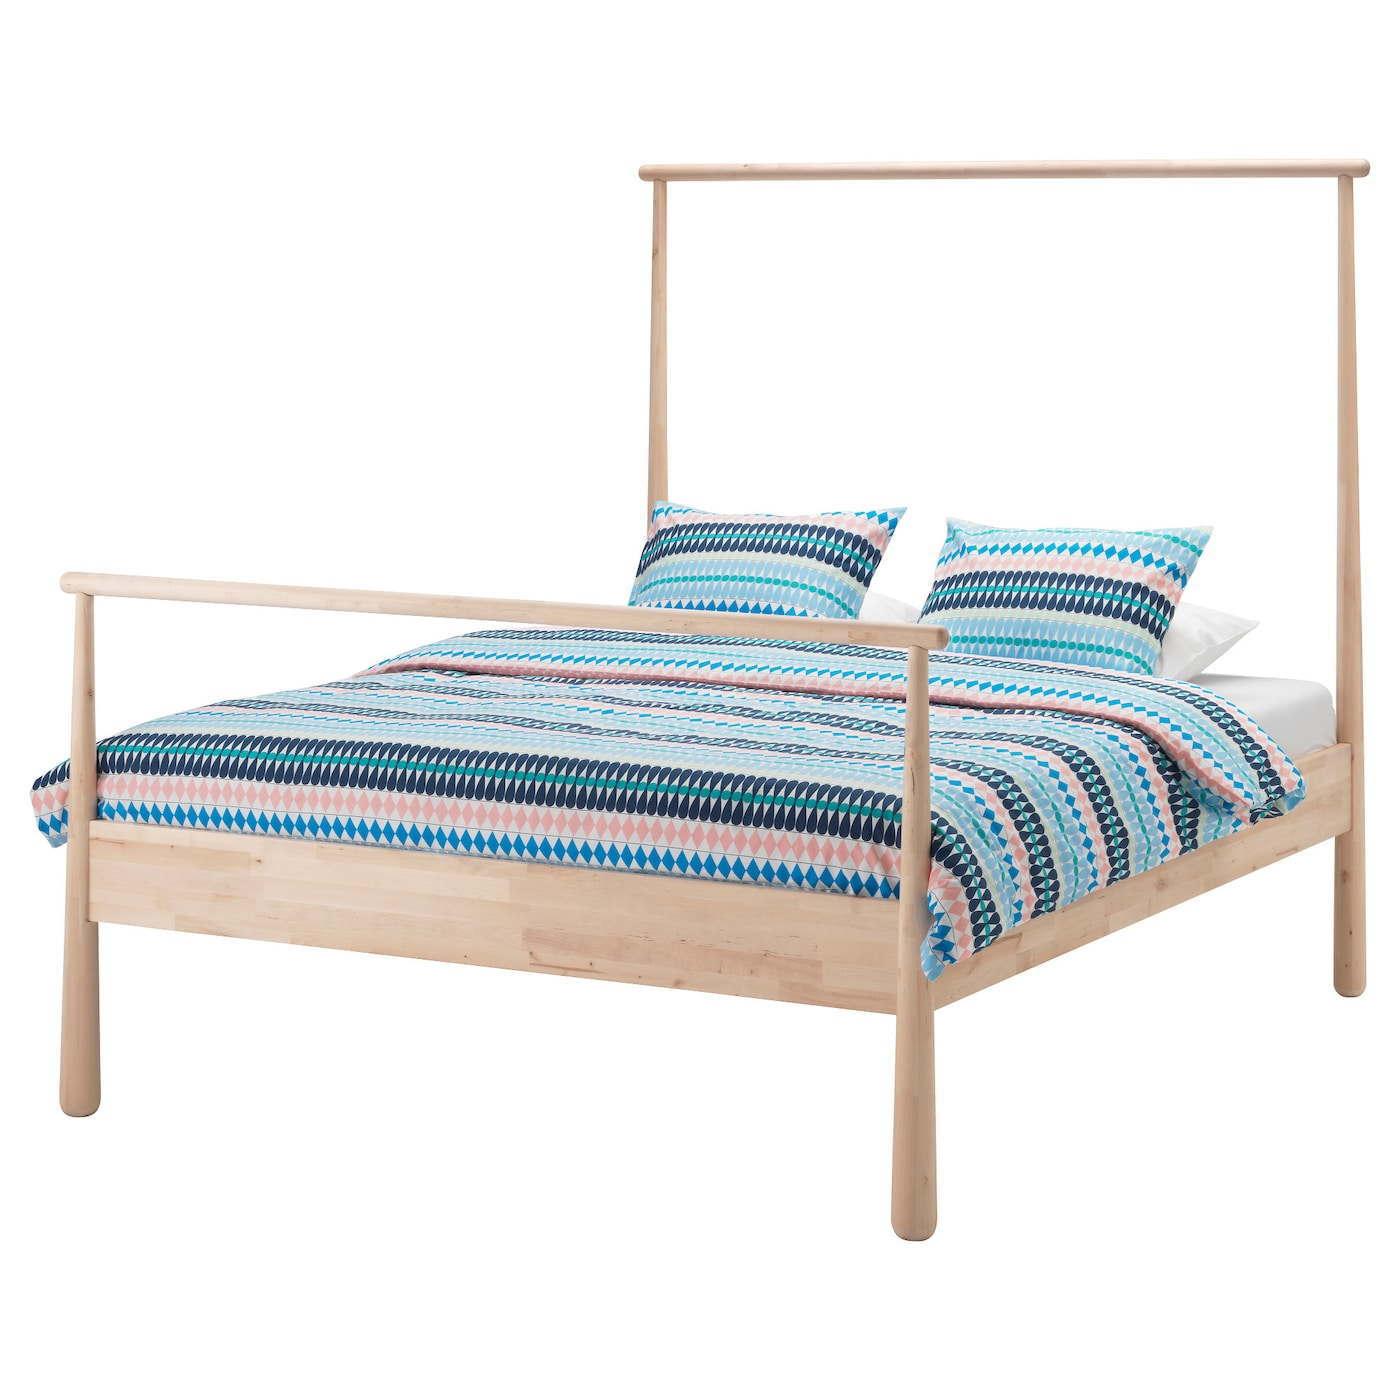 gj ra bed frame birch lur y standard double ikea